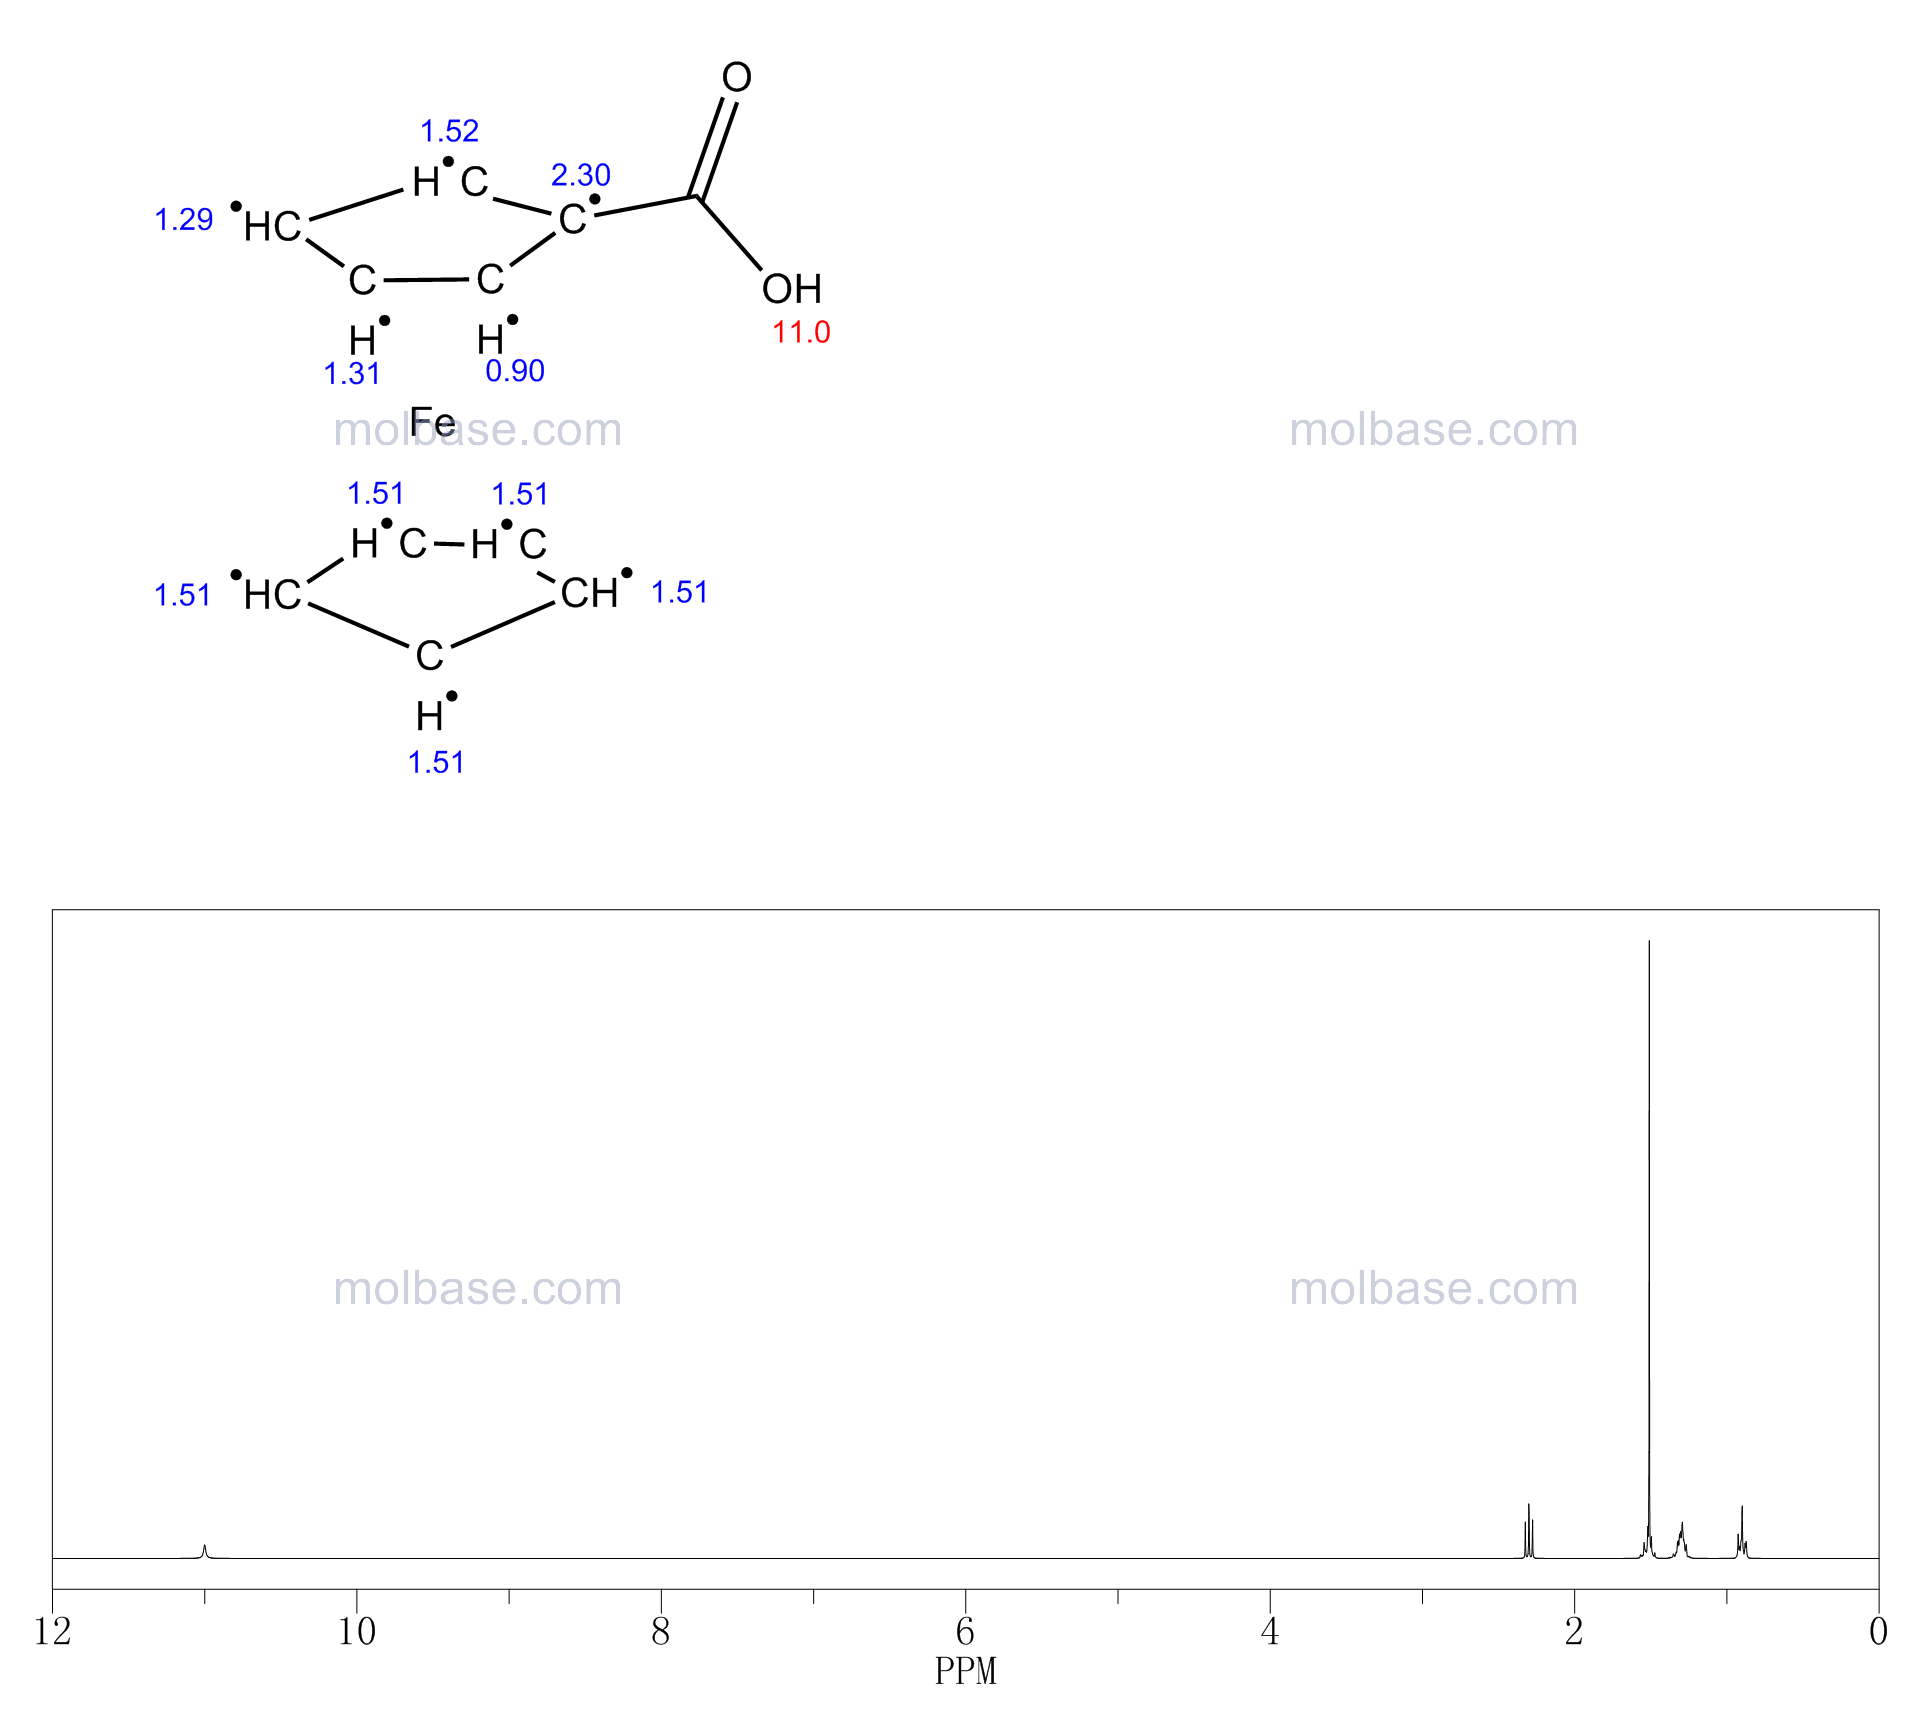 ferrocenecarboxylic acid NMR spectra analysis, Chemical CAS NO. 1271-42-7 NMR spectral analysis, ferrocenecarboxylic acid C-NMR spectrum